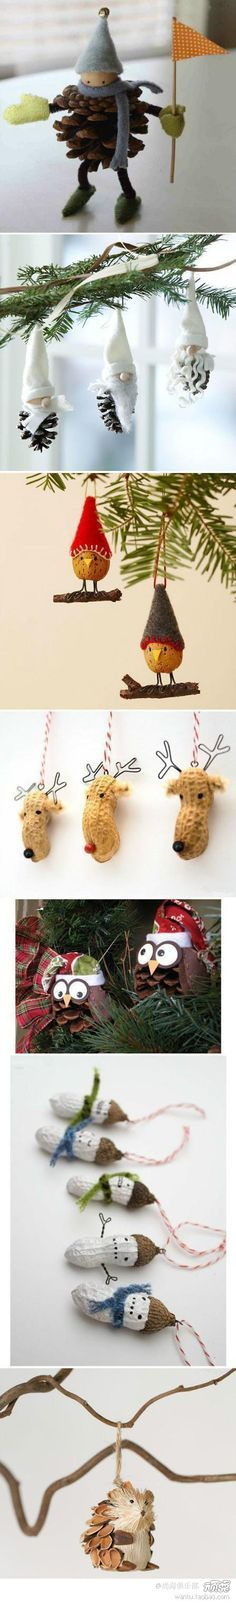 Christmas DIY tree ornaments...from pine cones and such. Cute for kids to make for gifts to each other or teachers.